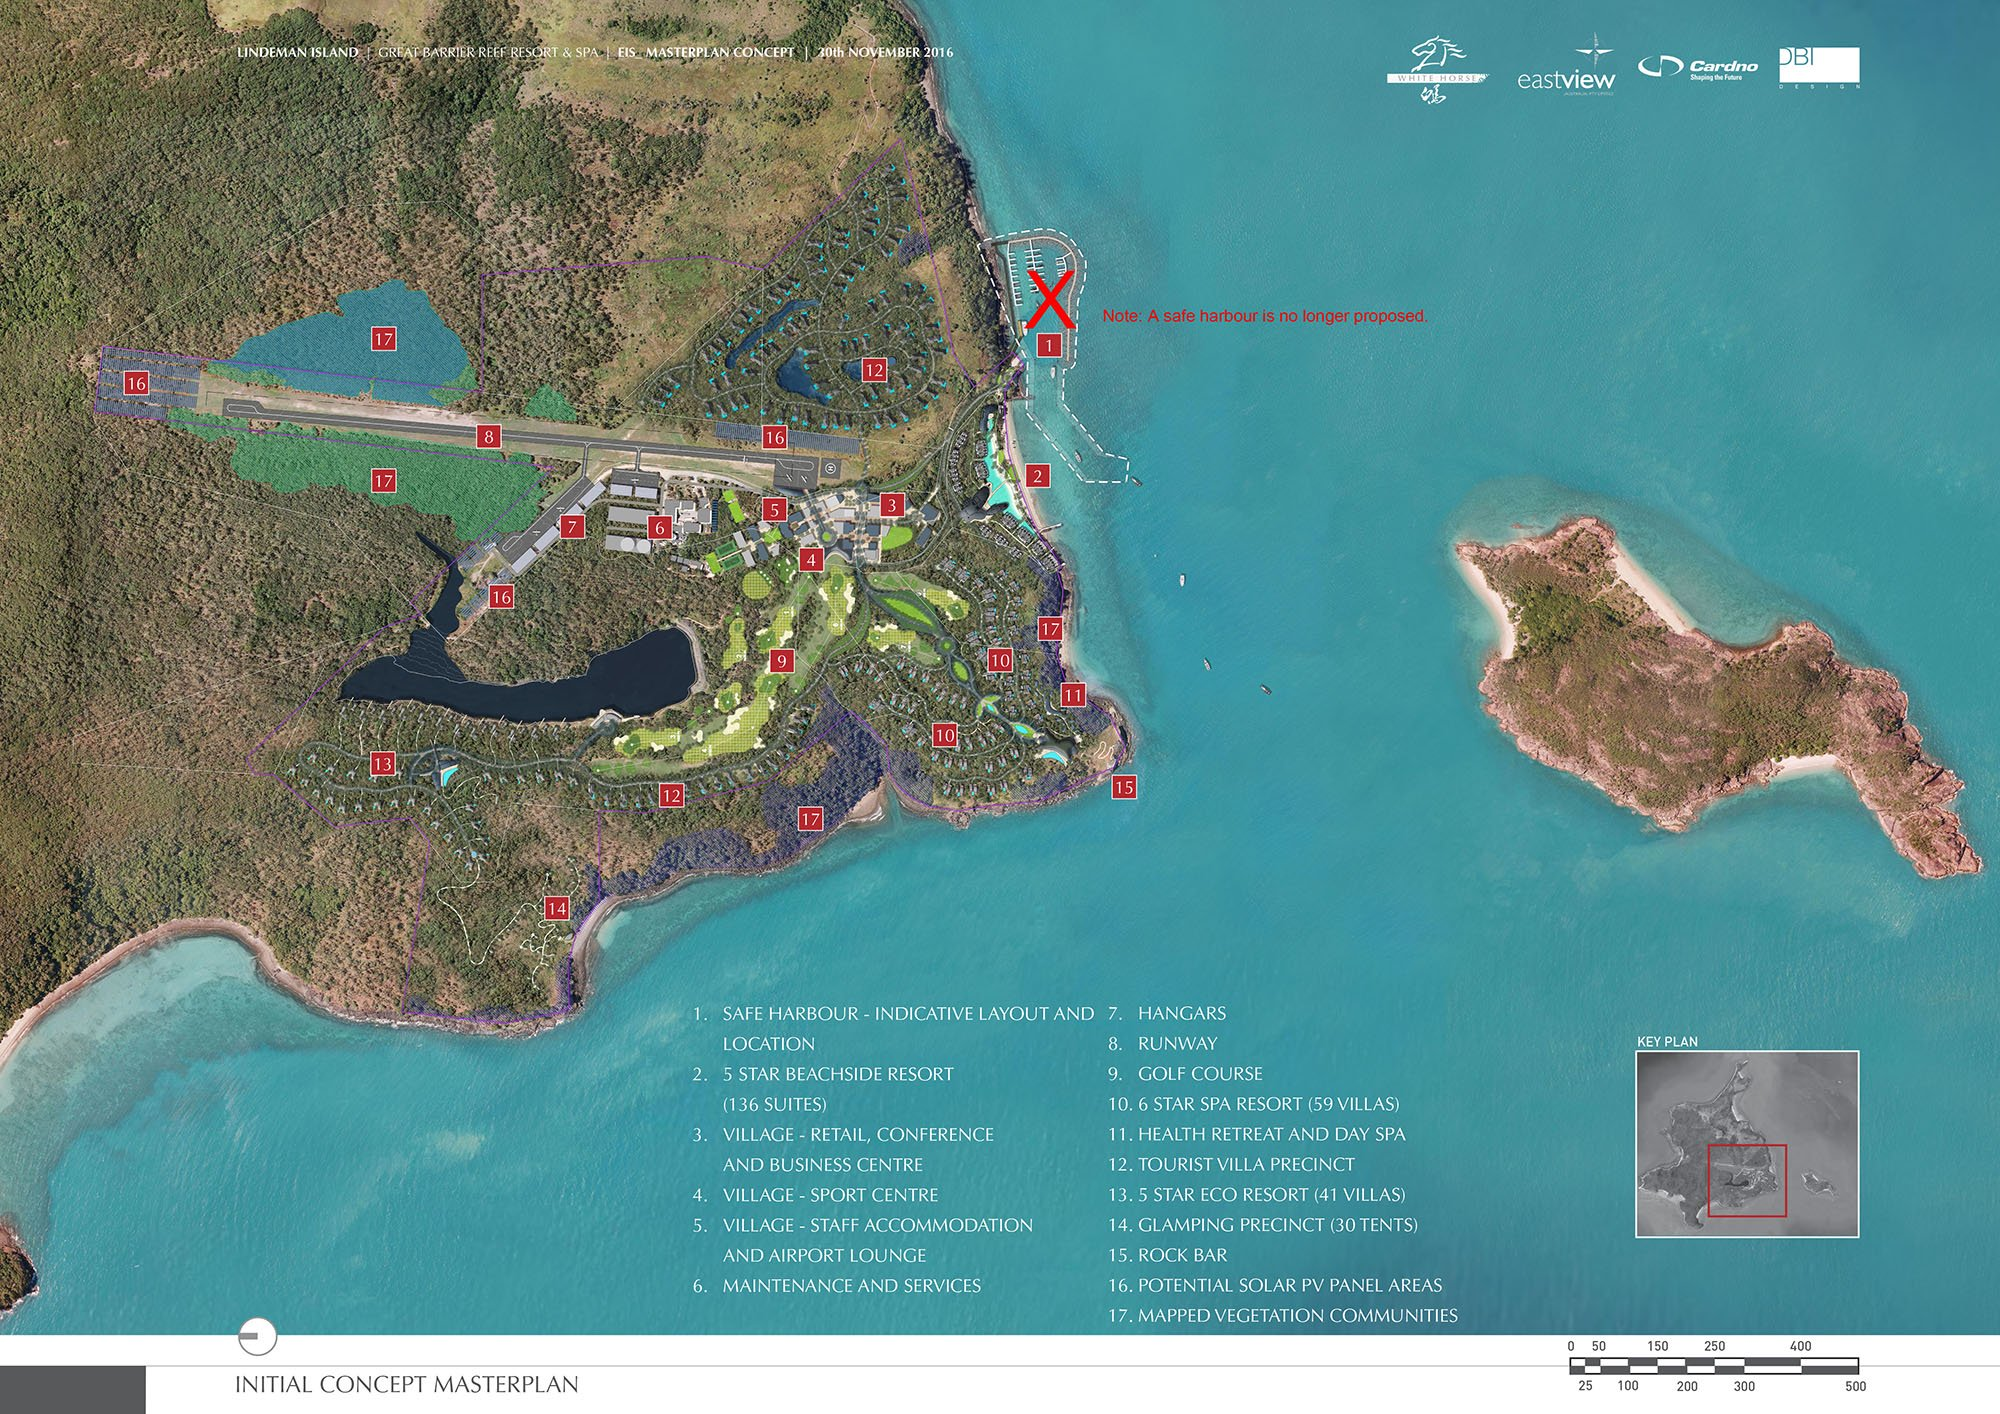 Masterplan-with-safe-harbour-edits-1